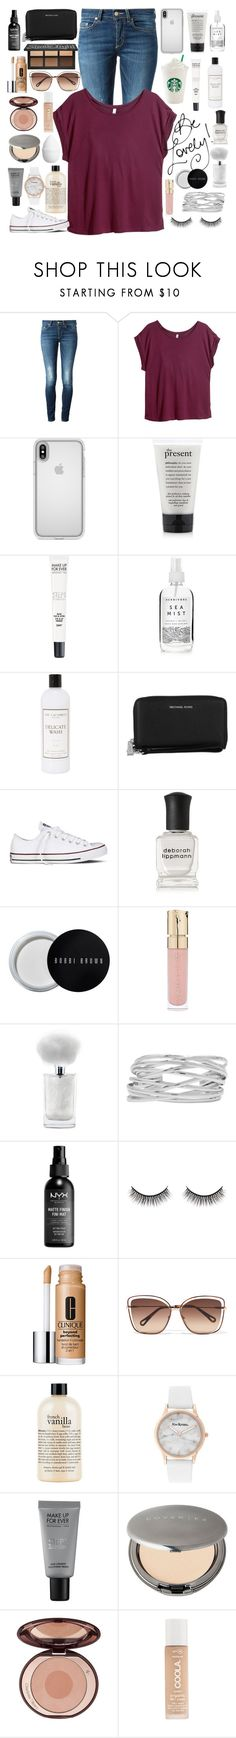 """Be Lovely!"" by annelieseoh ❤ liked on Polyvore featuring Dondup, H&M, Speck, philosophy, MAKE UP FOR EVER, Herbivore, The Laundress, Michael Kors, Converse and Deborah Lippmann"